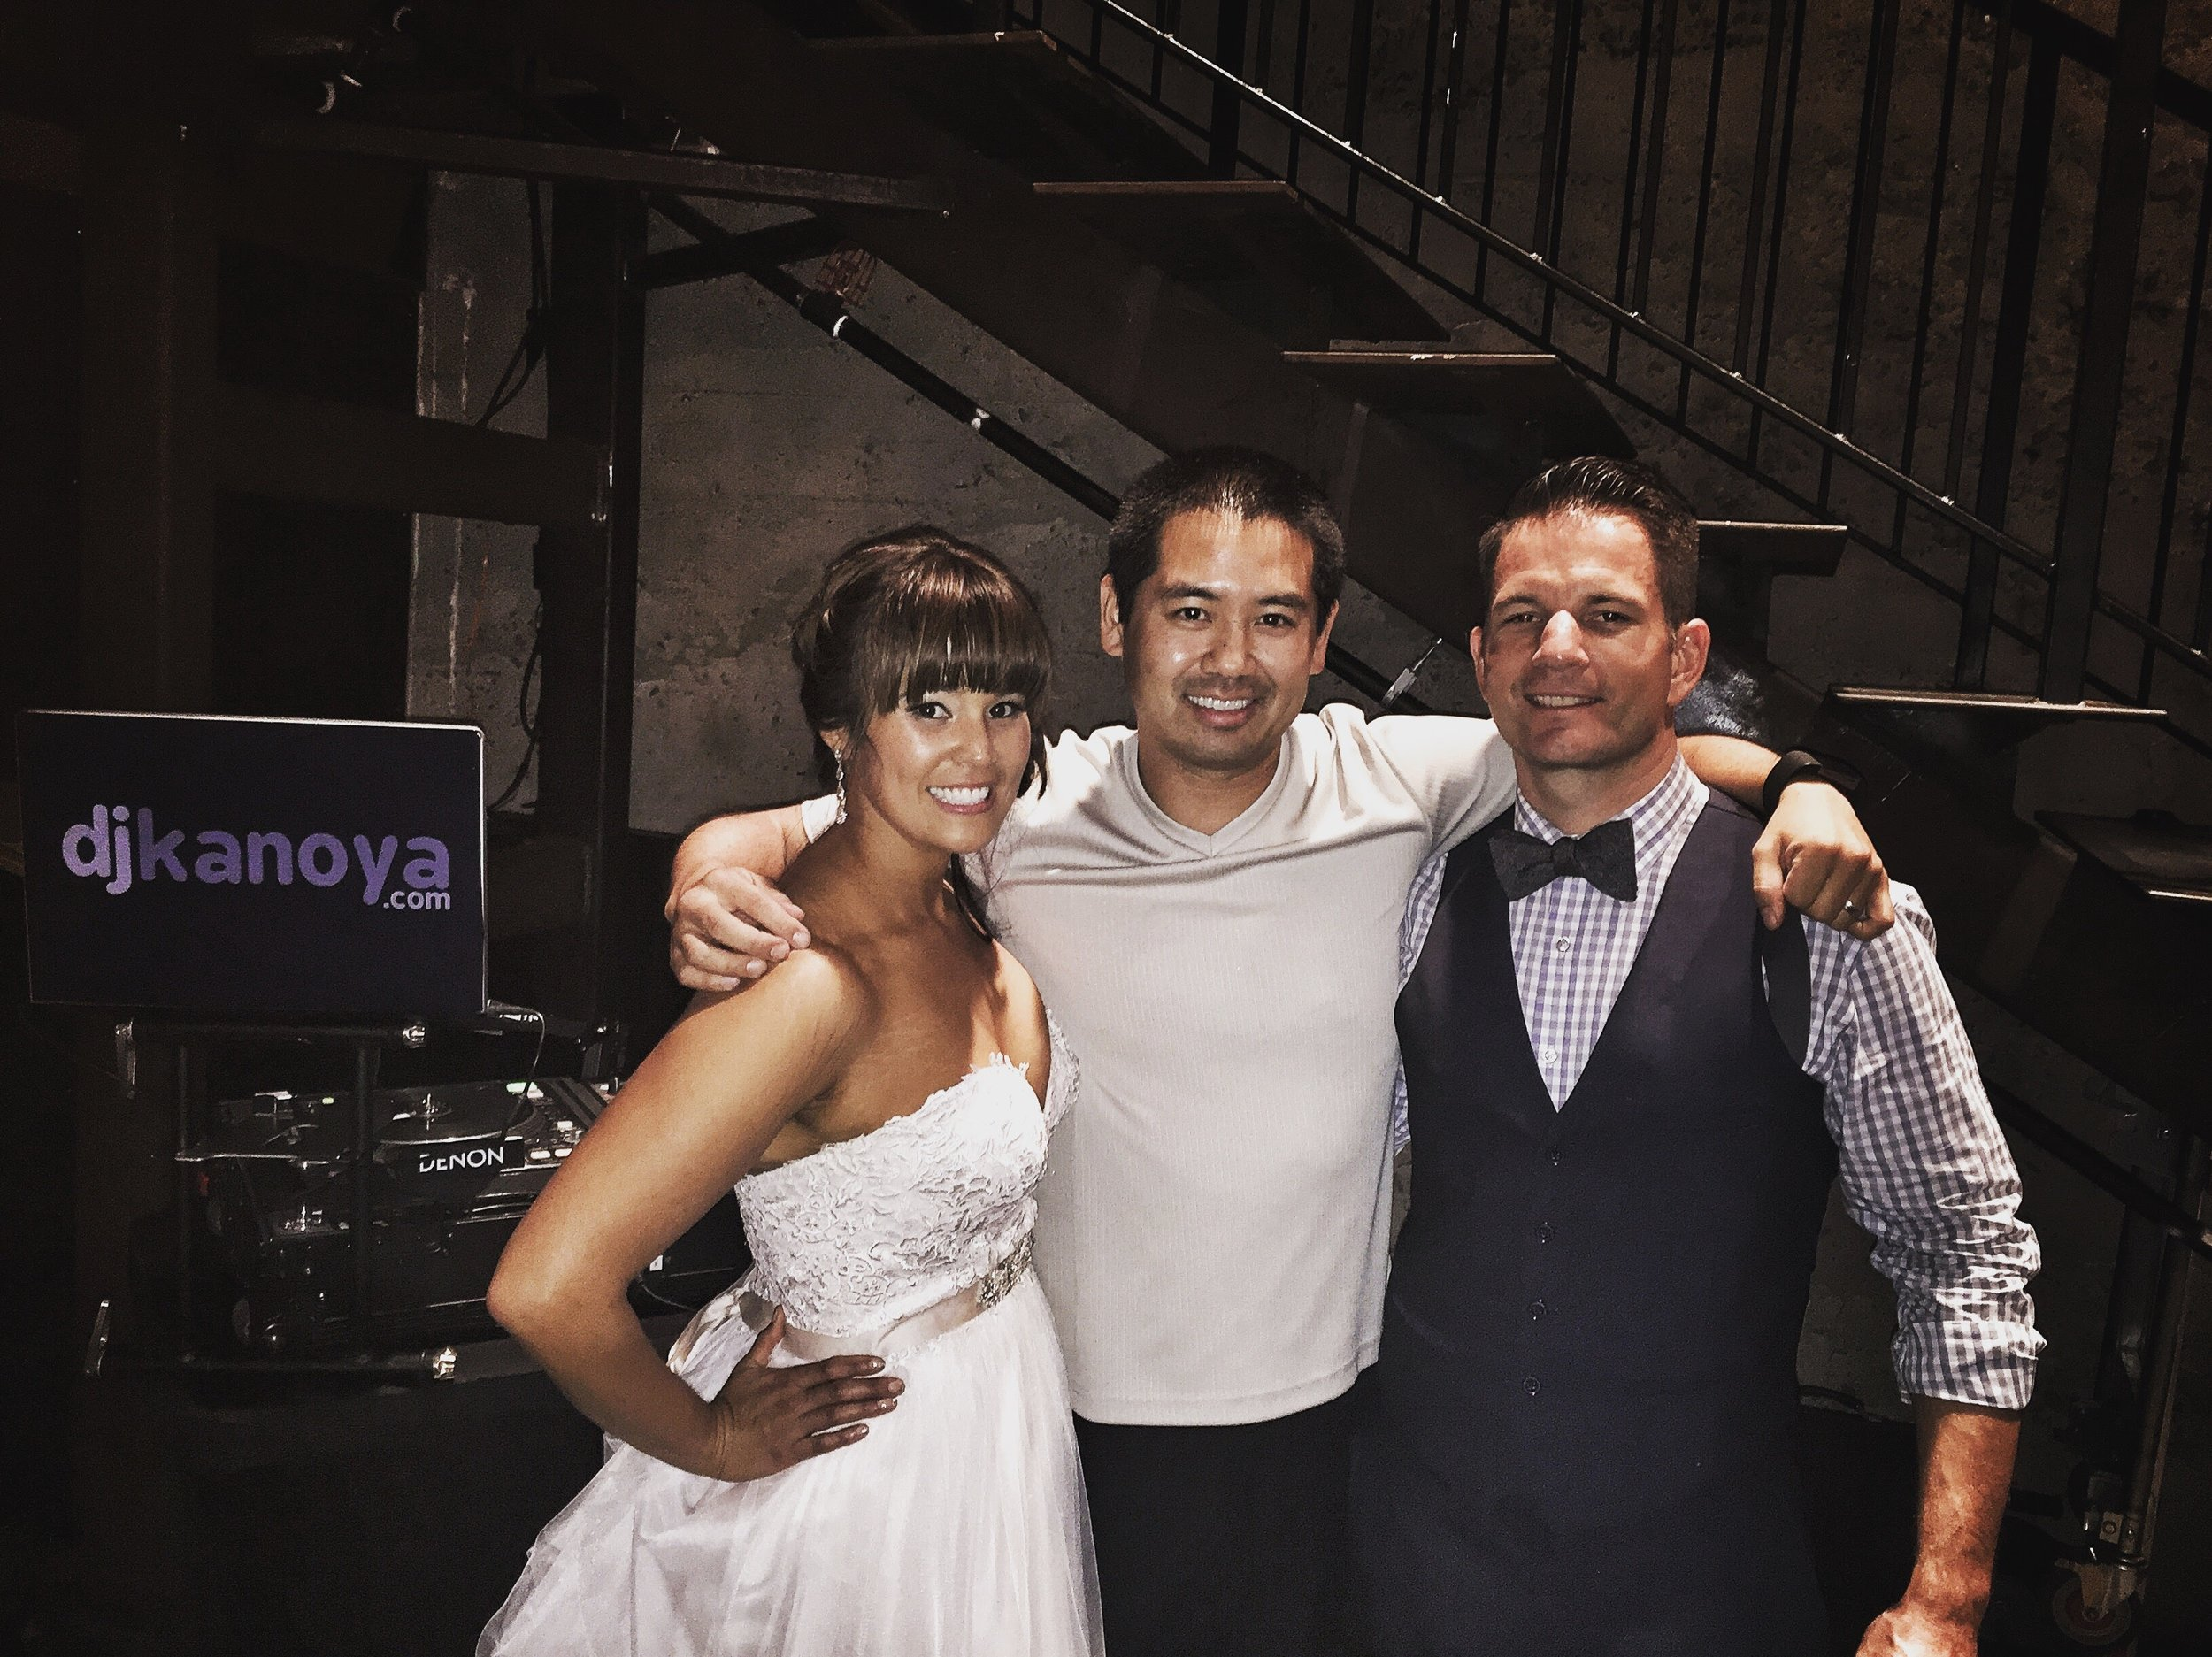 Erik and Melanie partied at Luce Loft in downtown San Diego on their wedding day.